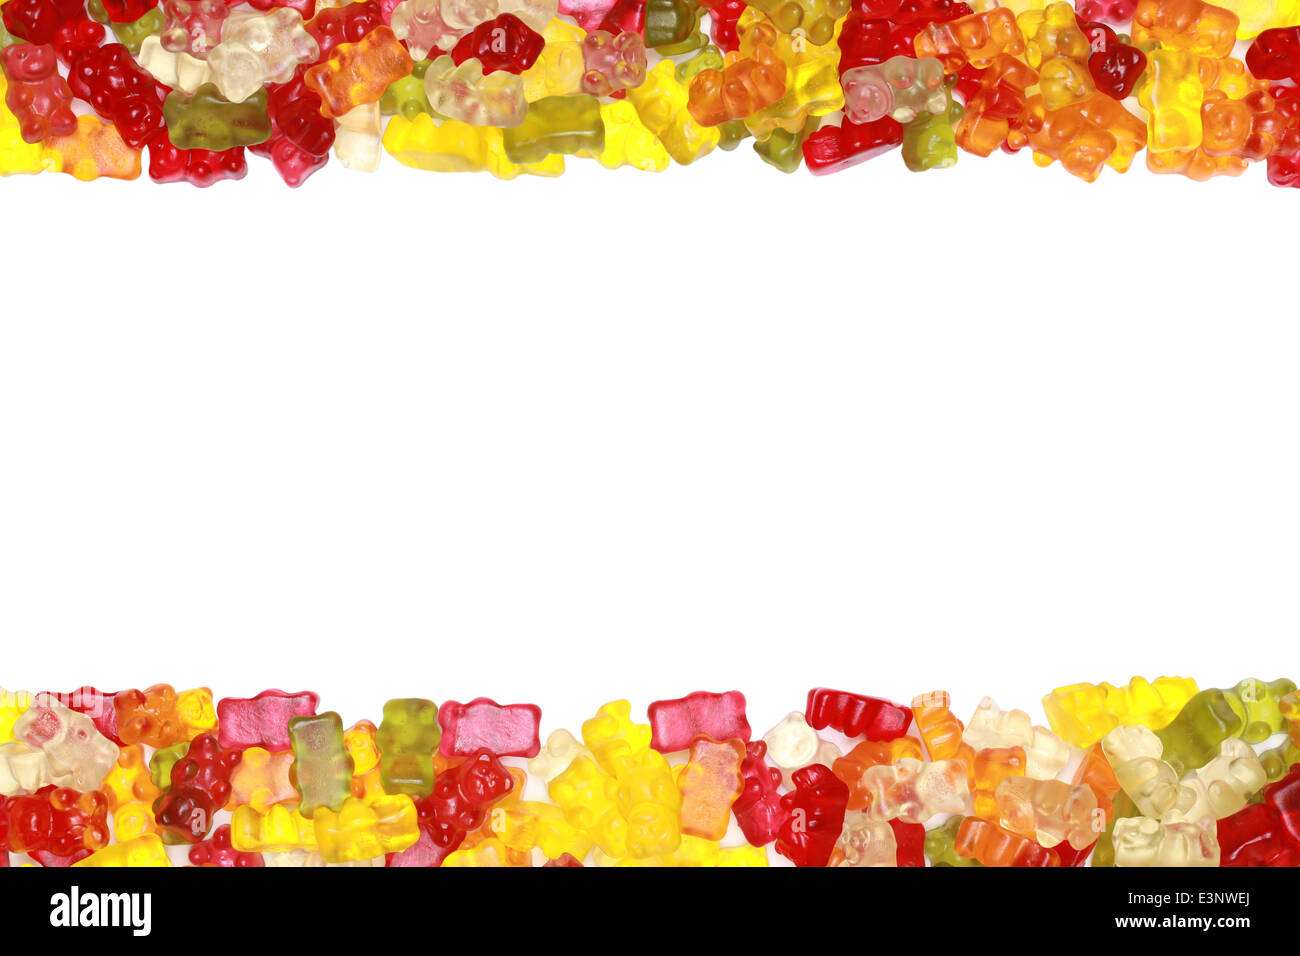 Collection of delicious colorful gummy bears forming a frame. Stock Photo